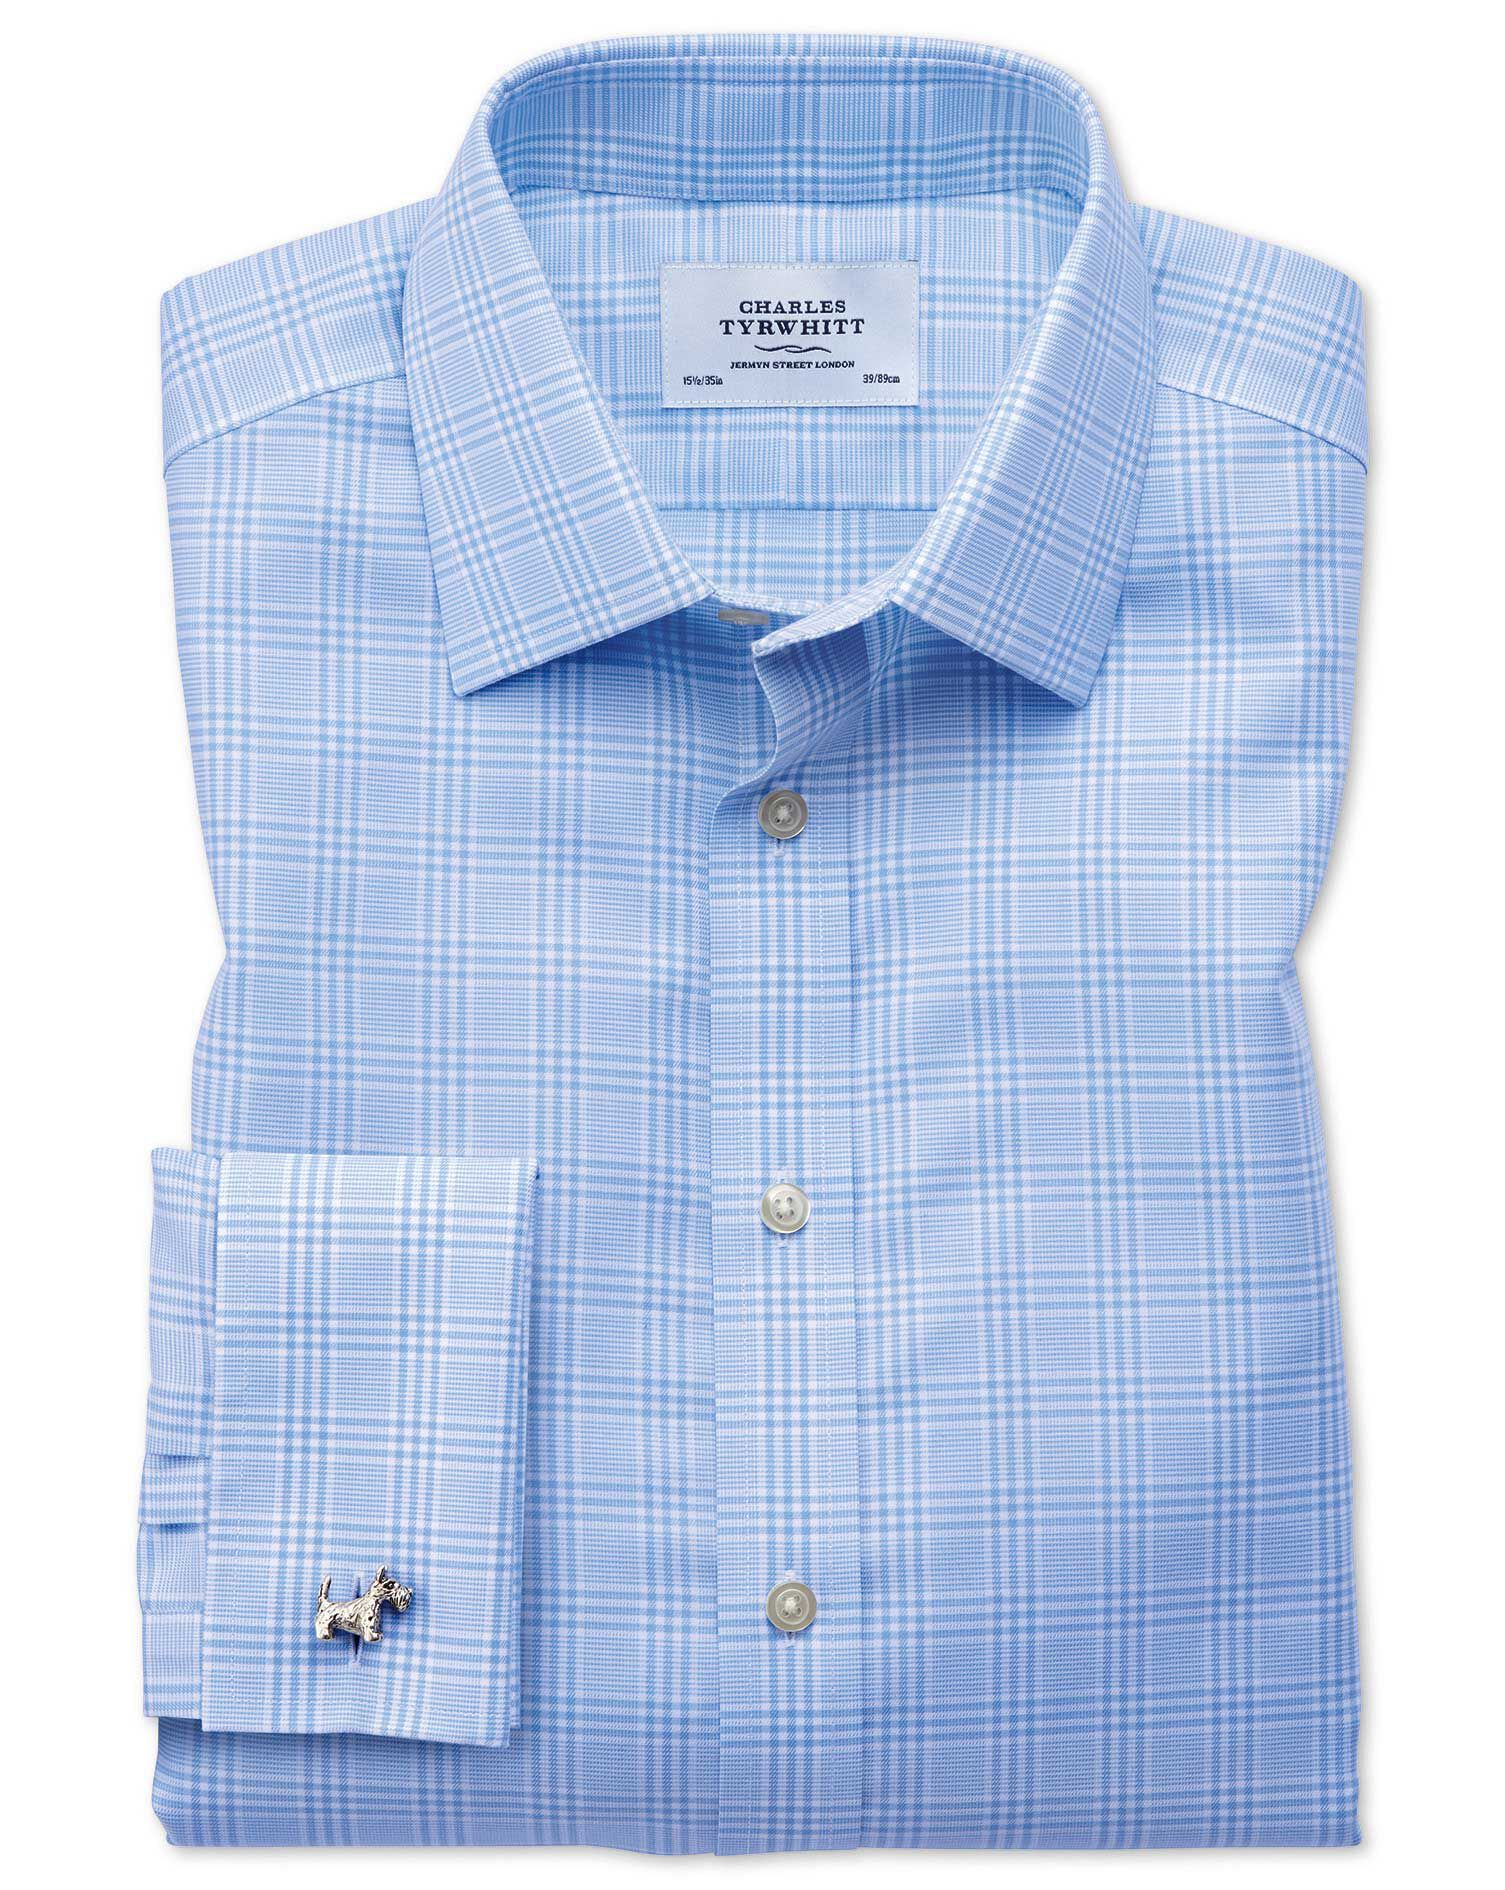 Classic Fit Non-Iron Prince Of Wales Sky Blue Cotton Formal Shirt Double Cuff Size 16.5/35 by Charle